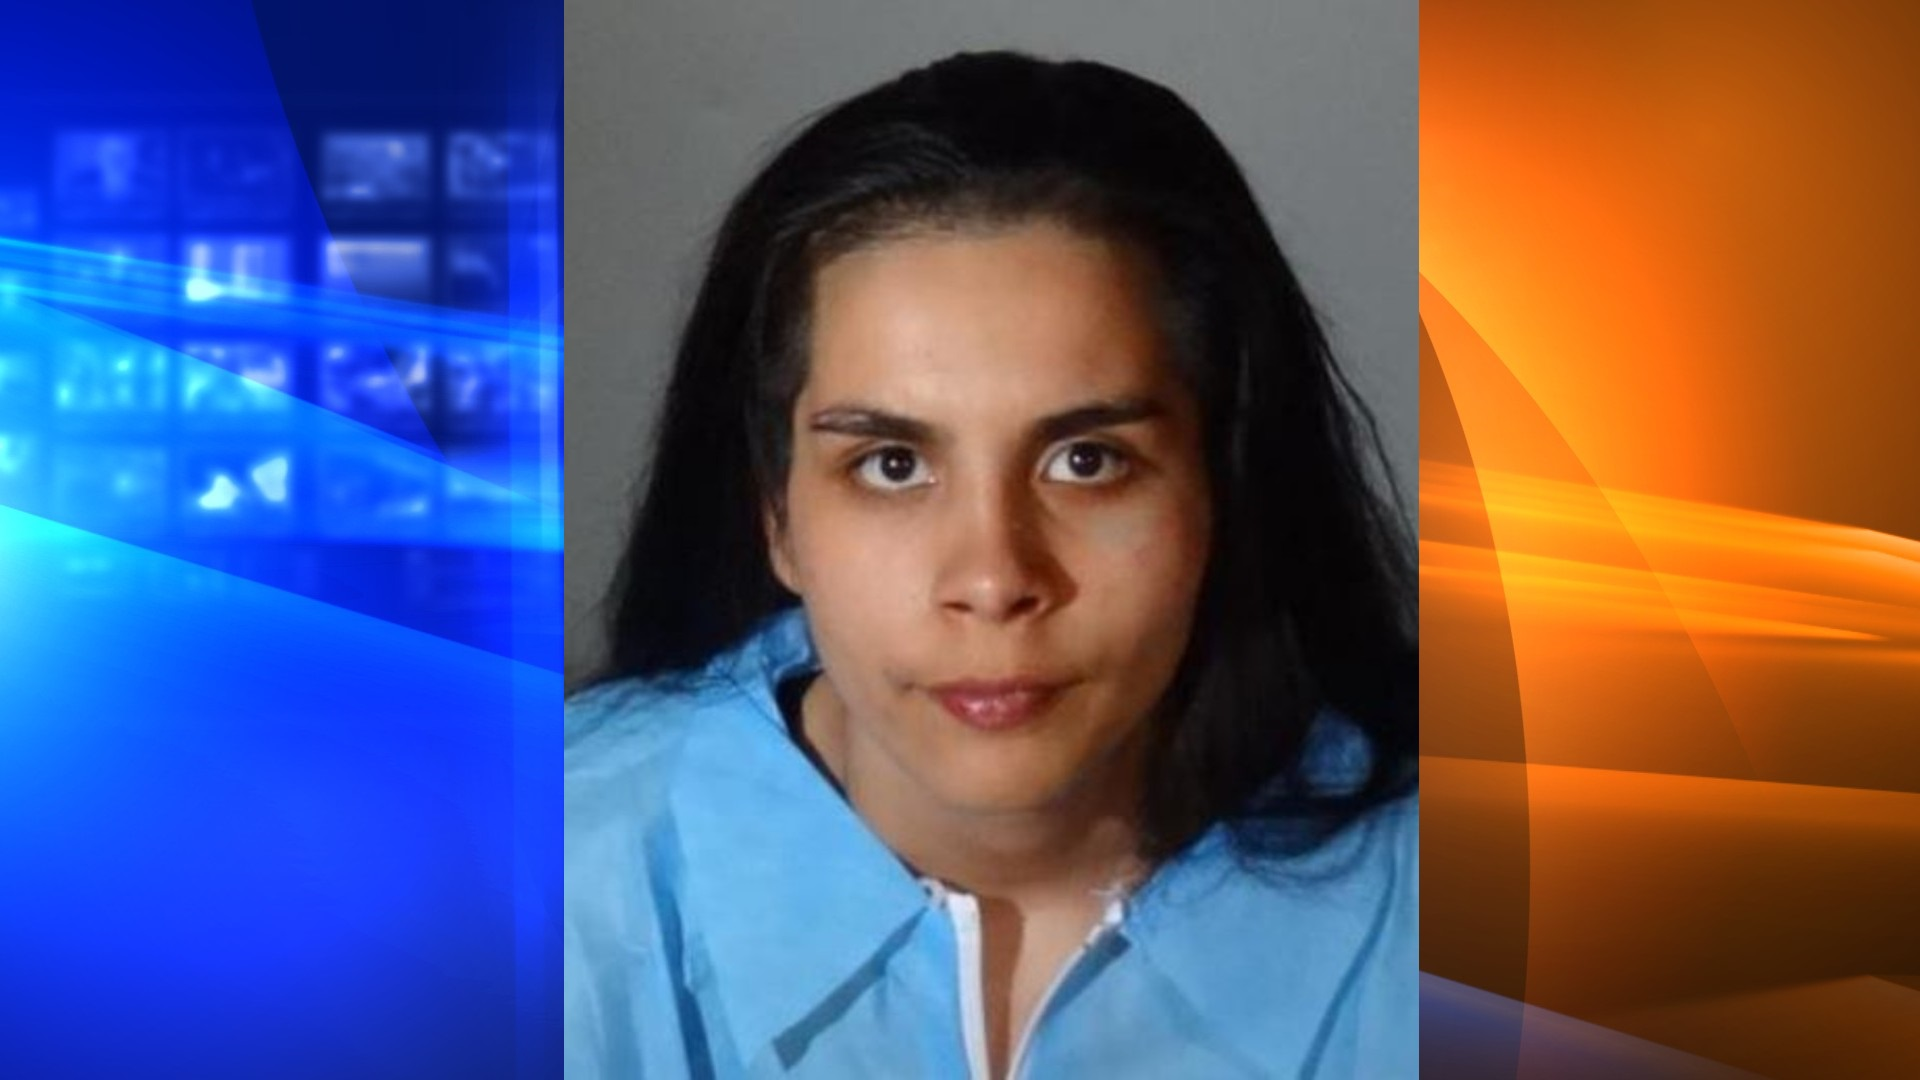 Samantha Tovar, 22, of San Francisco, pictured in a photo released by the El Segundo Police Department following her arrest on May 27, 2020.